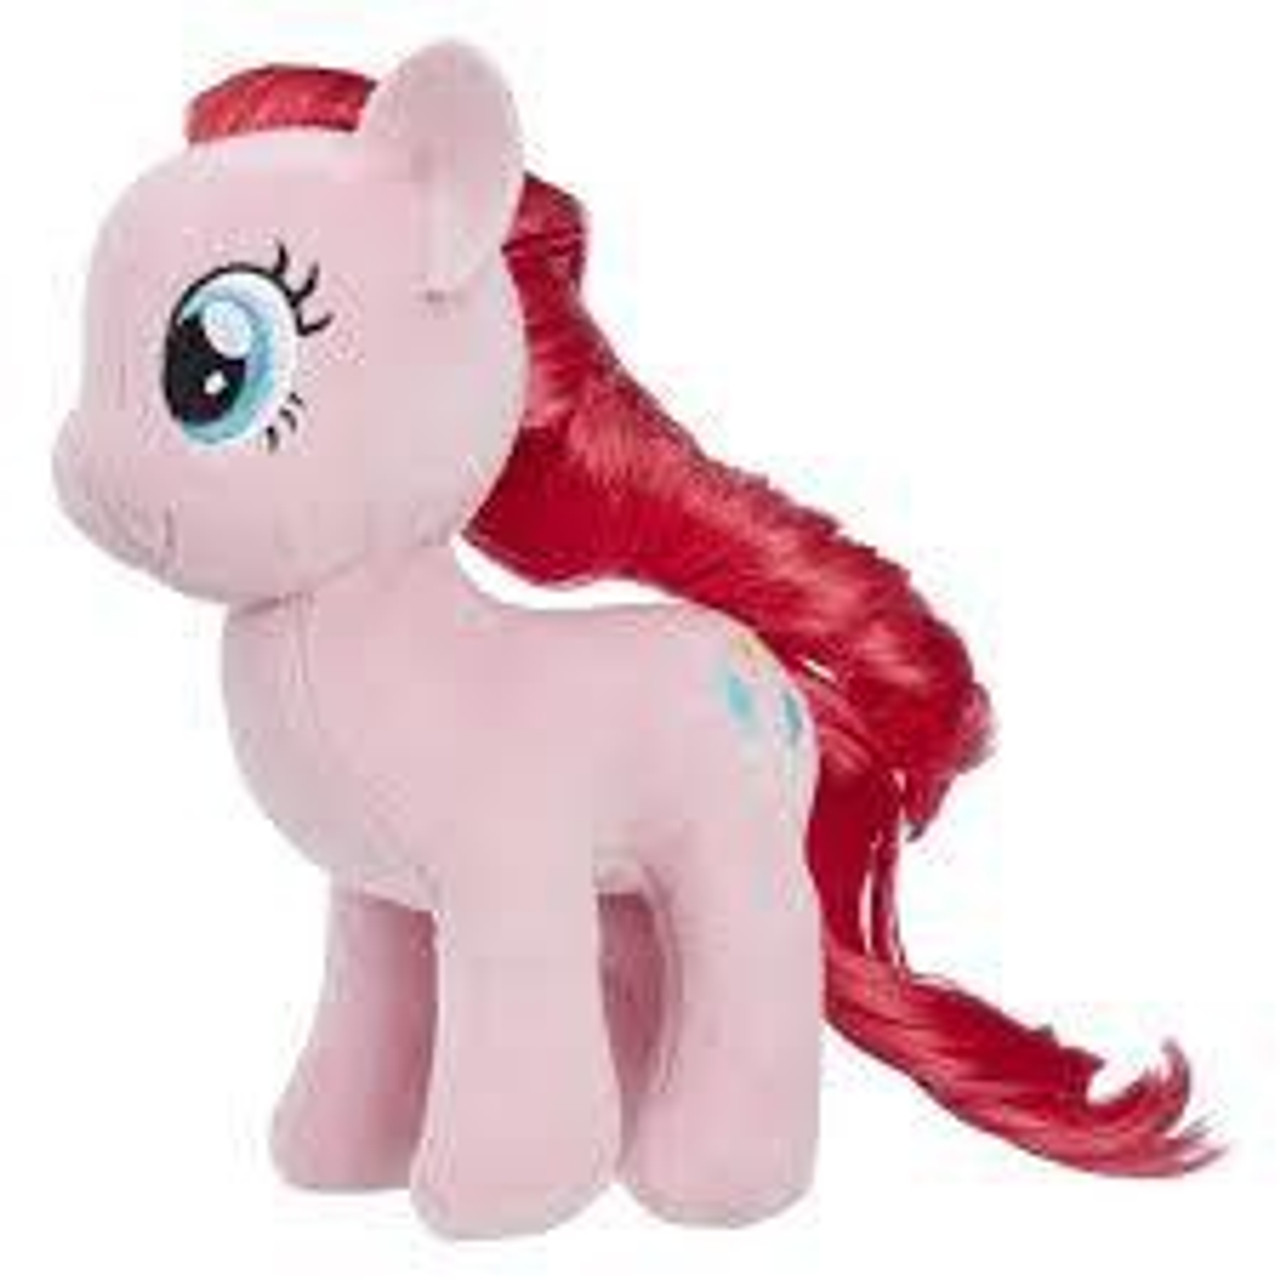 MY LITTLE PONY THE MOVIE PINKIE PIE 7 INCHES PLUSH